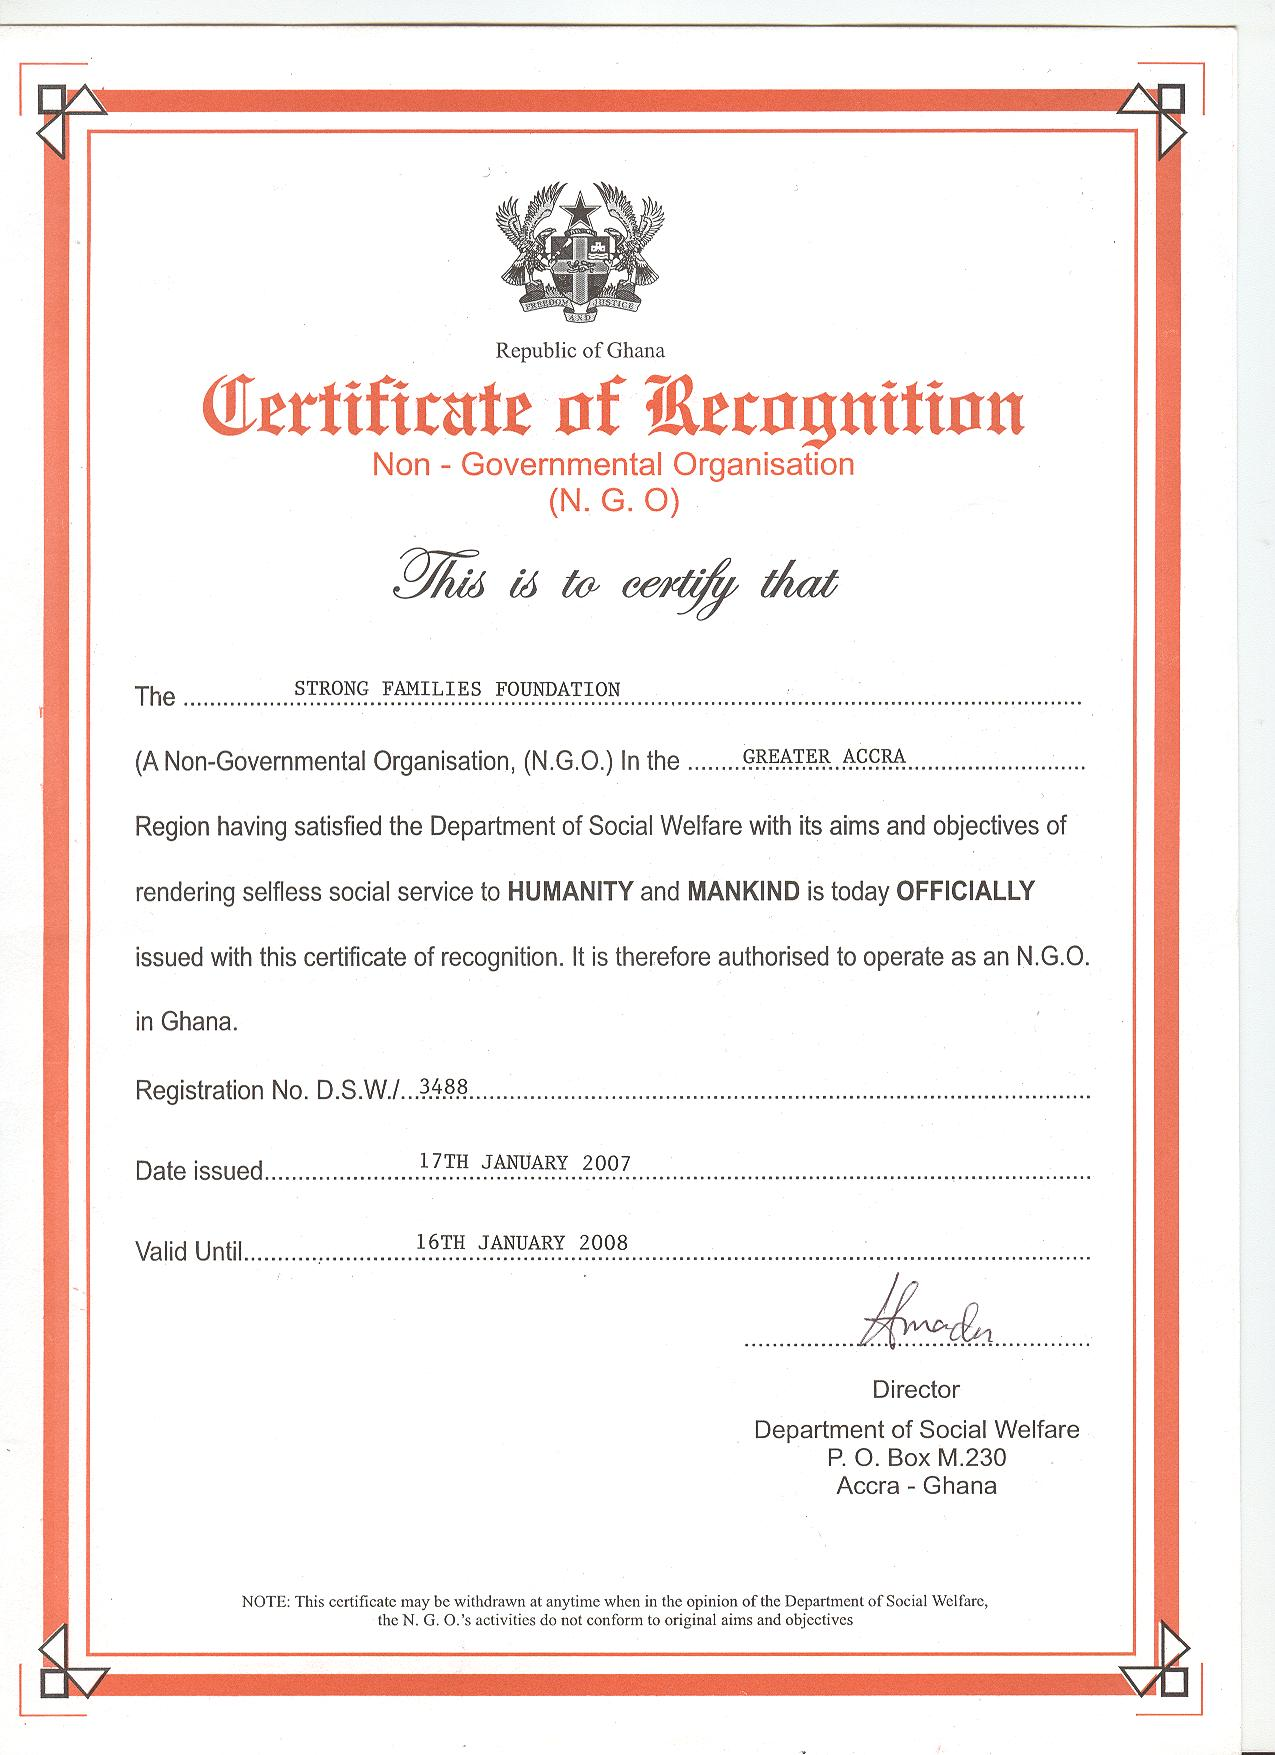 Strong family foundation certification of recognition 1betcityfo Gallery